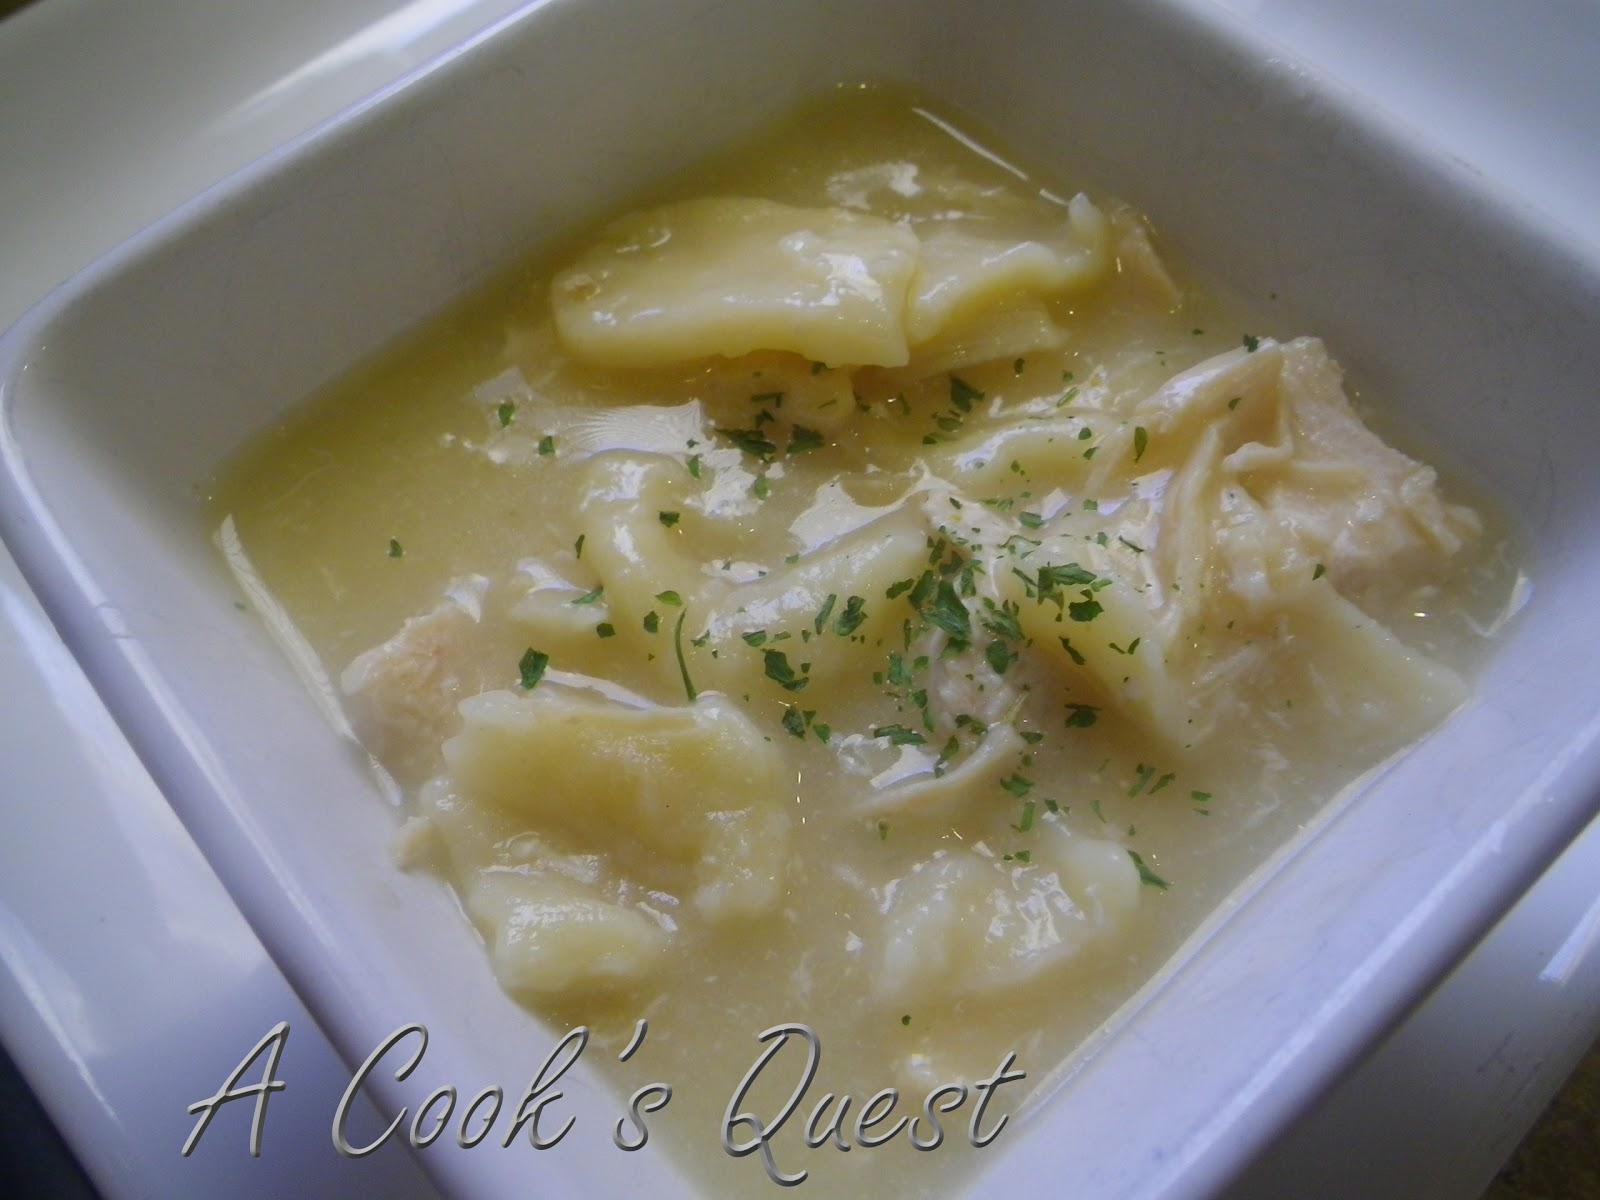 Cook's Quest: Chicken and Dumplings